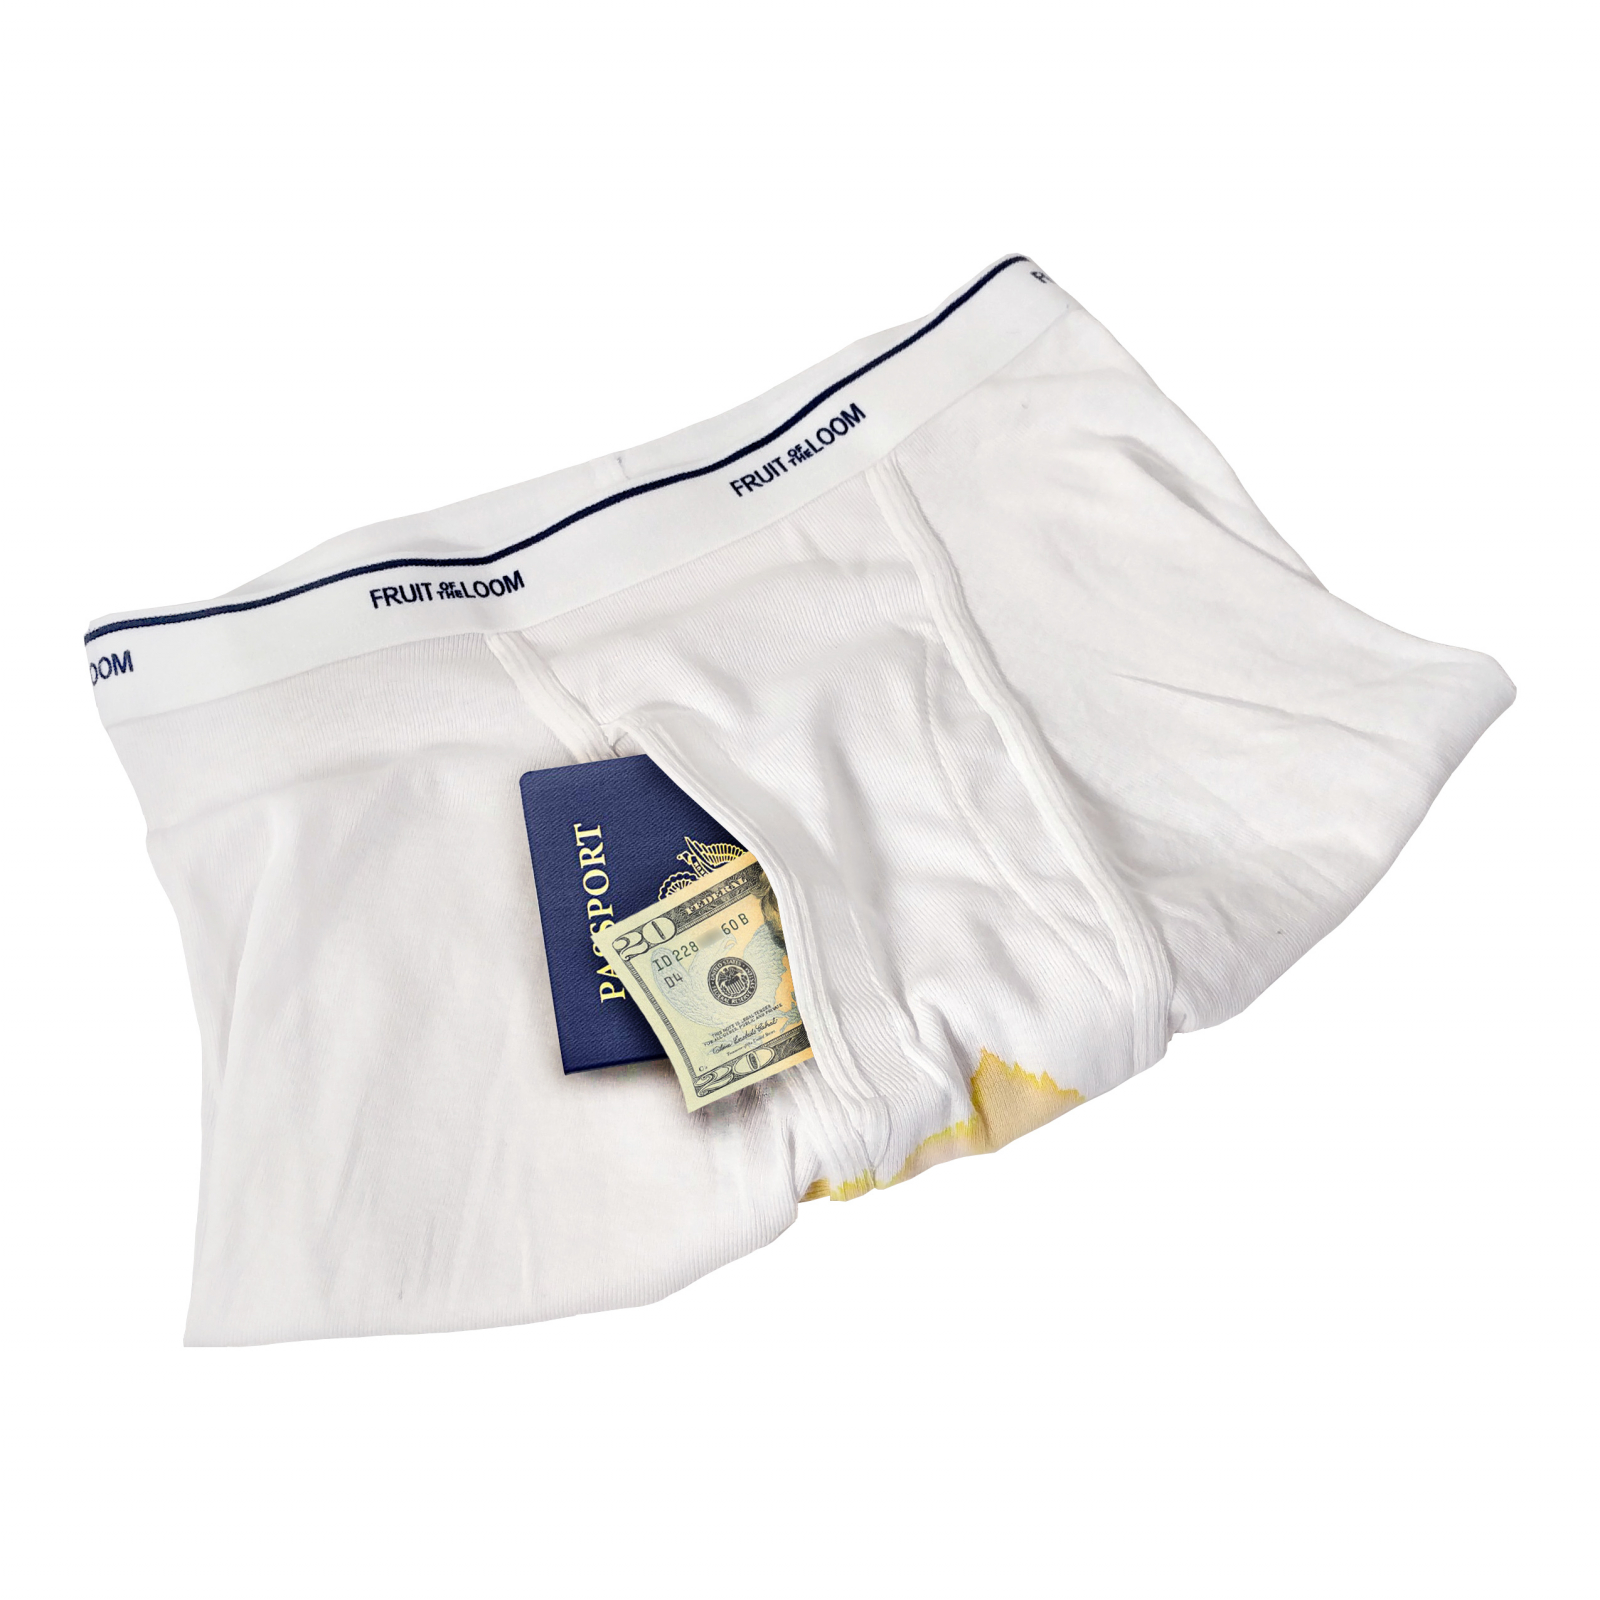 The Boxer Brief Safe Diversion Safe Passport Money Protector